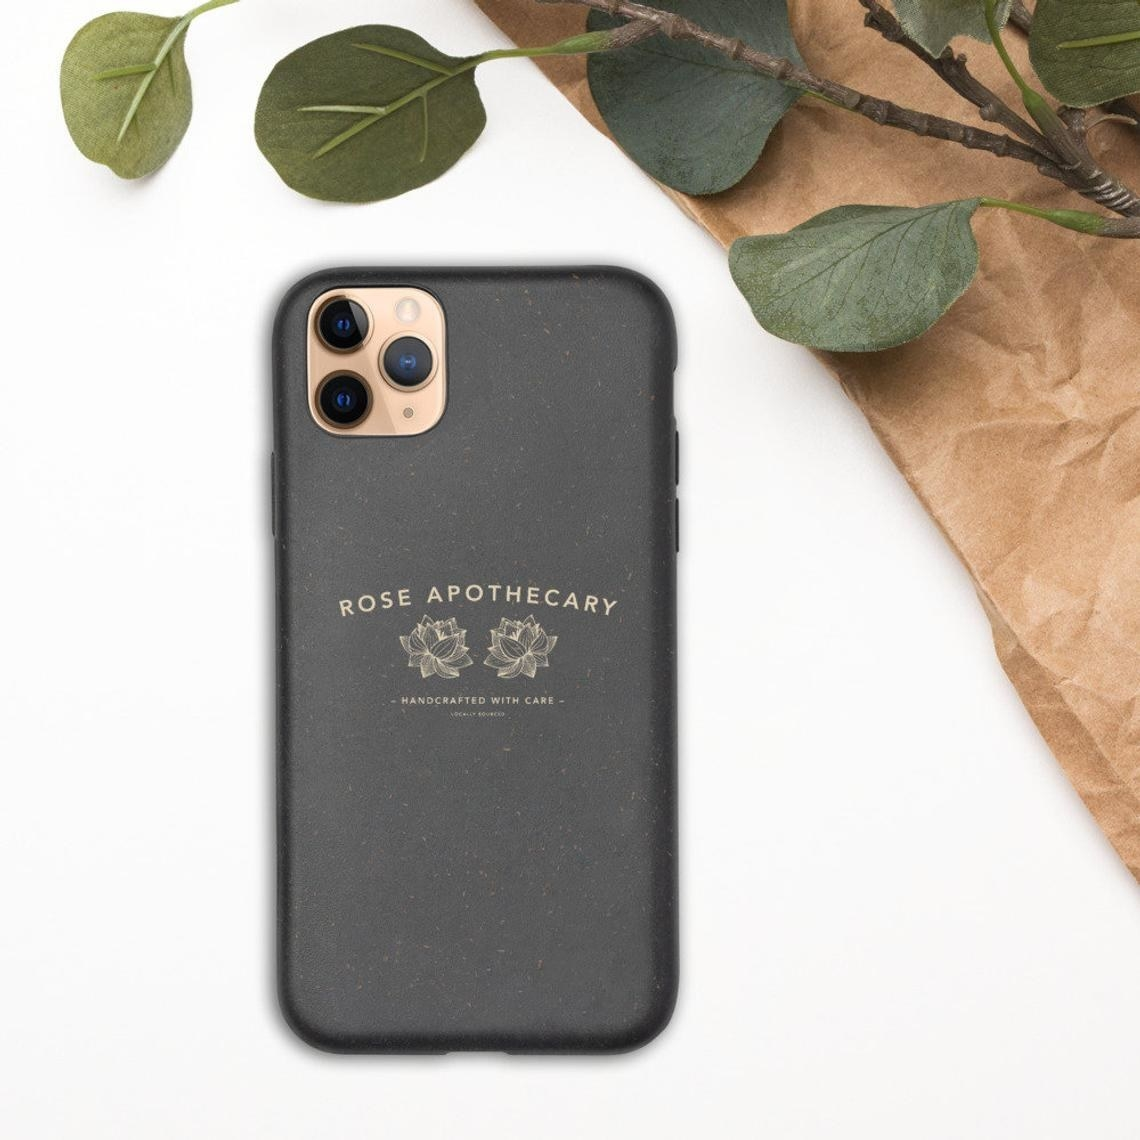 The case on a phone next to a plant and paper bag